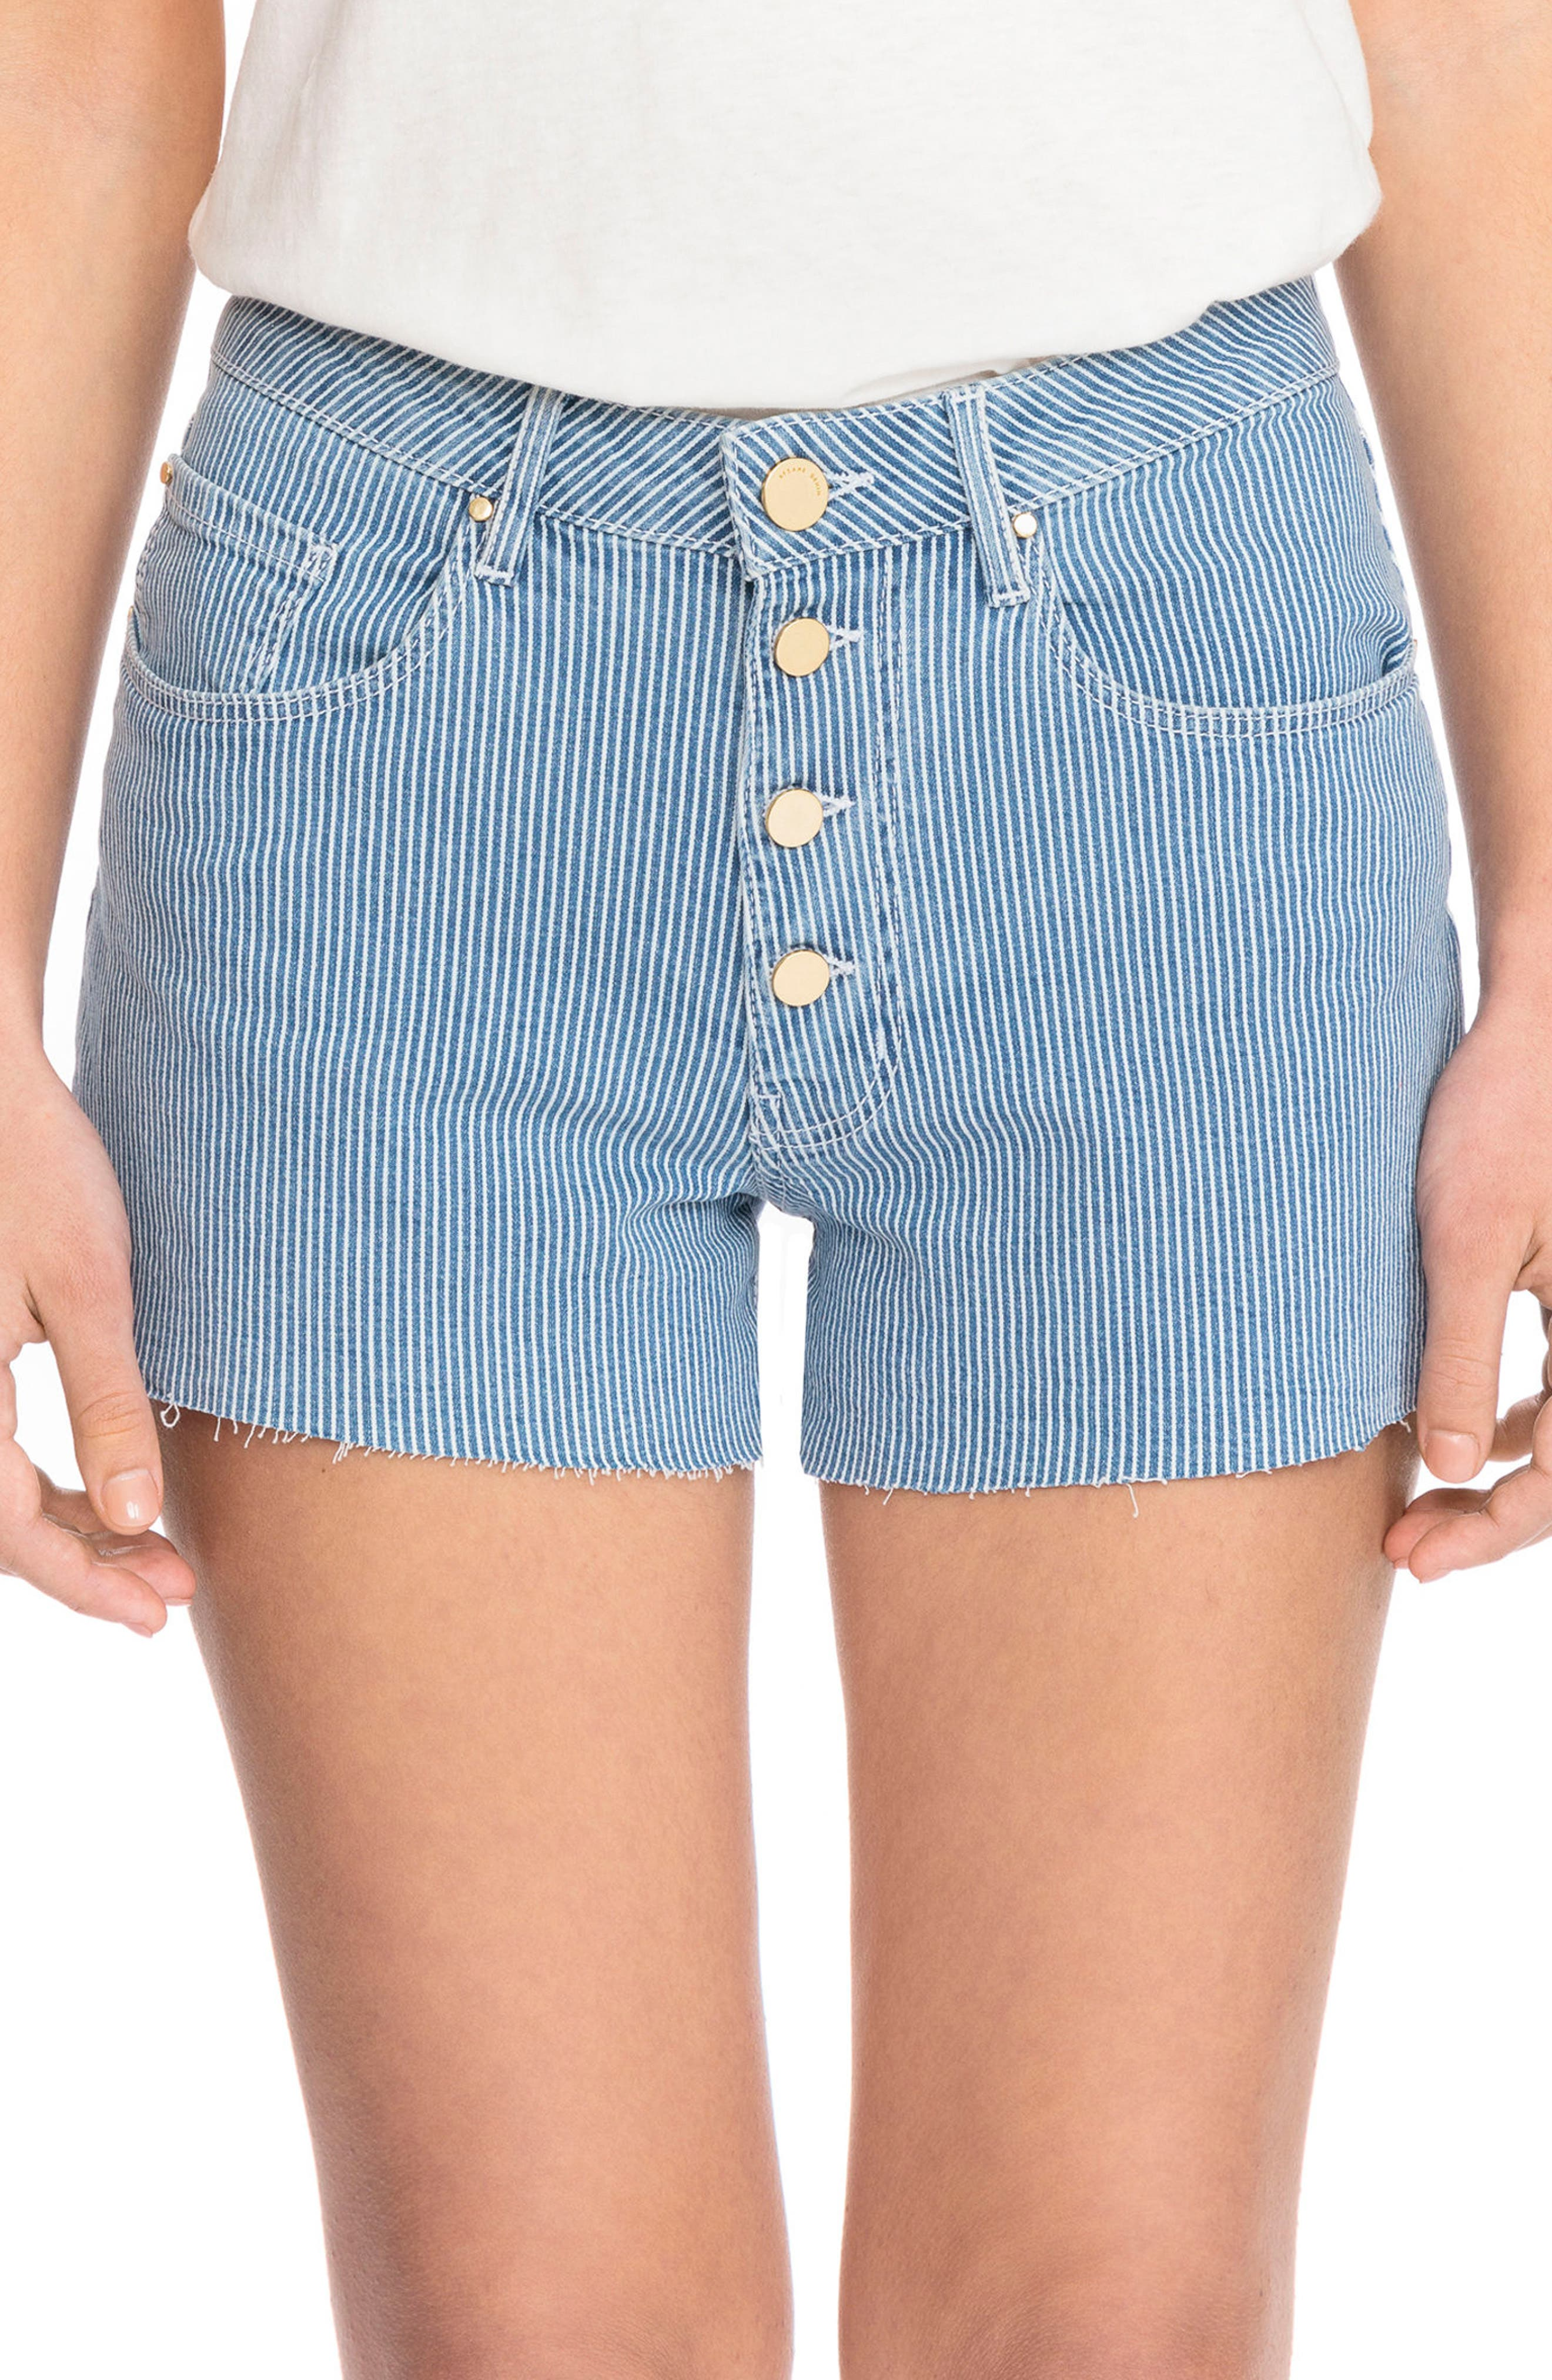 1968 Stripe Cutoff Denim Shorts,                             Main thumbnail 1, color,                             Off White And Blue Stripes